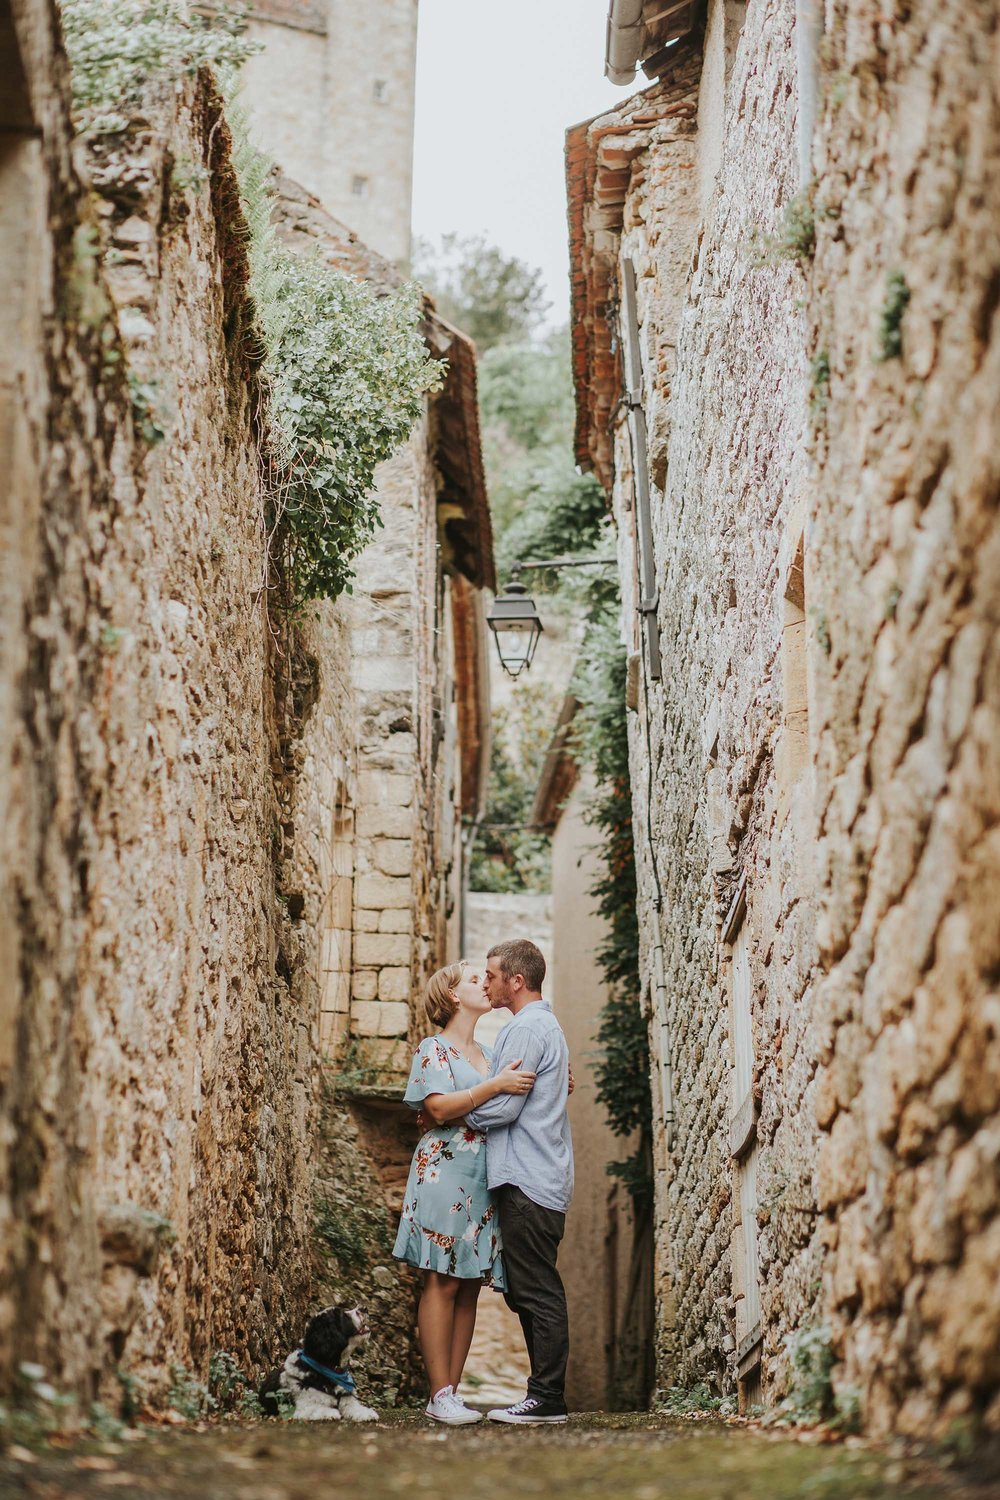 Wedding photographer Puy L'Eveque